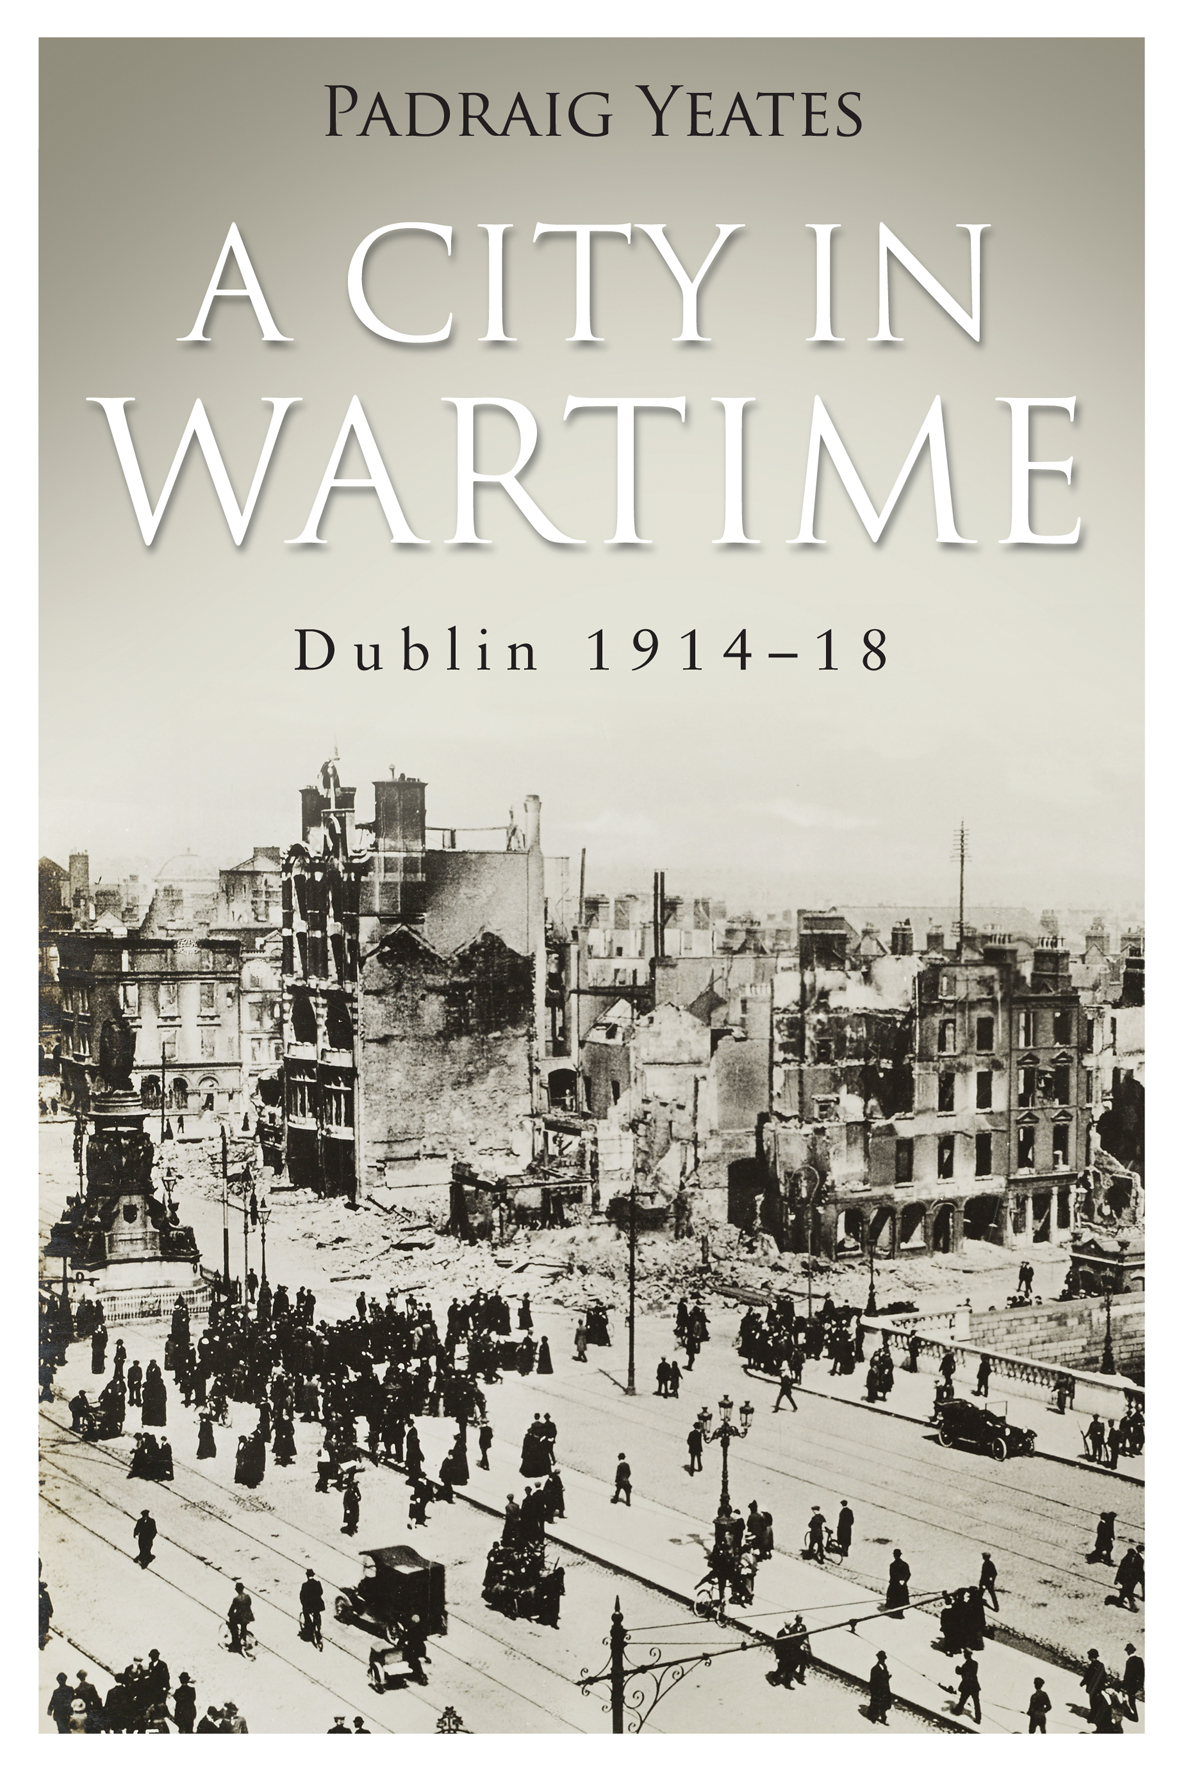 Dublin 1914-1918 A City in Wartime: Easter Rising 1916 By: Pádraig   Yeates